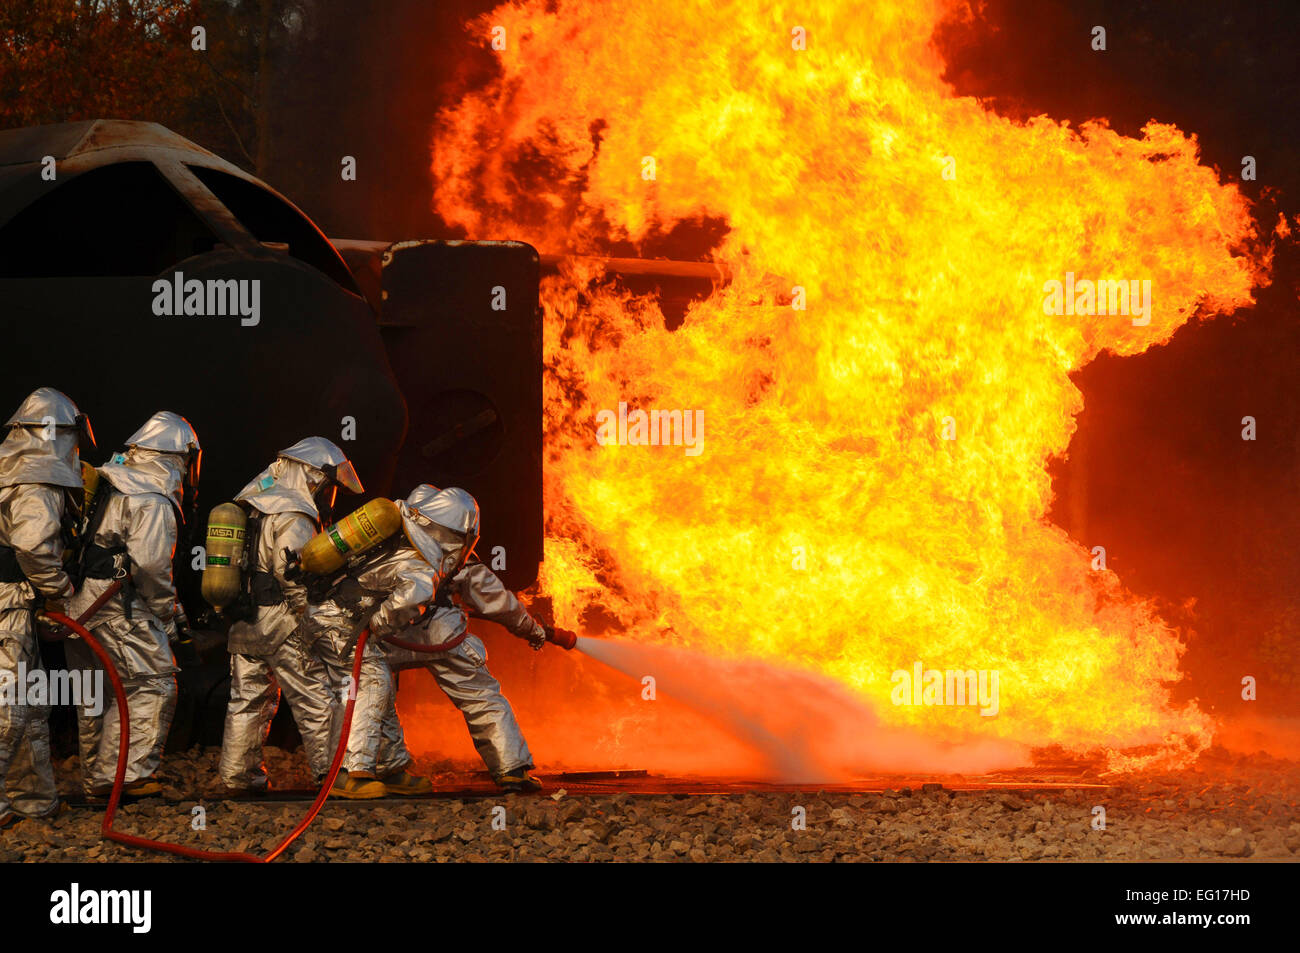 Firefighters from the Ohio Air National Guard's 180th Fighter Wing extinguish an aircraft fire during a training Stock Photo